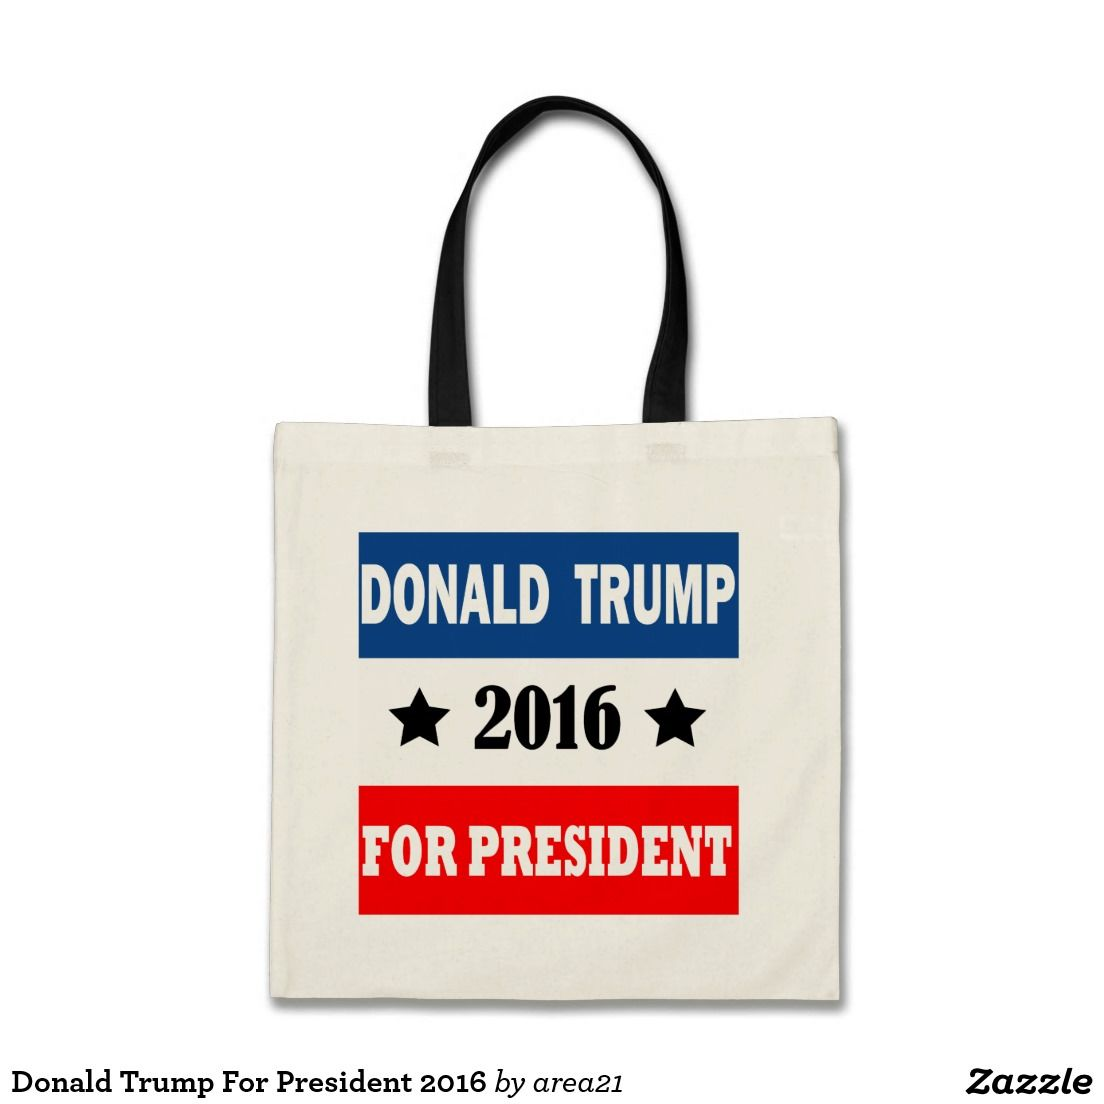 Donald Trump For President 2016 Budget Tote Bag #Donaldtrumpforpresident #DonaldTrump #Trump